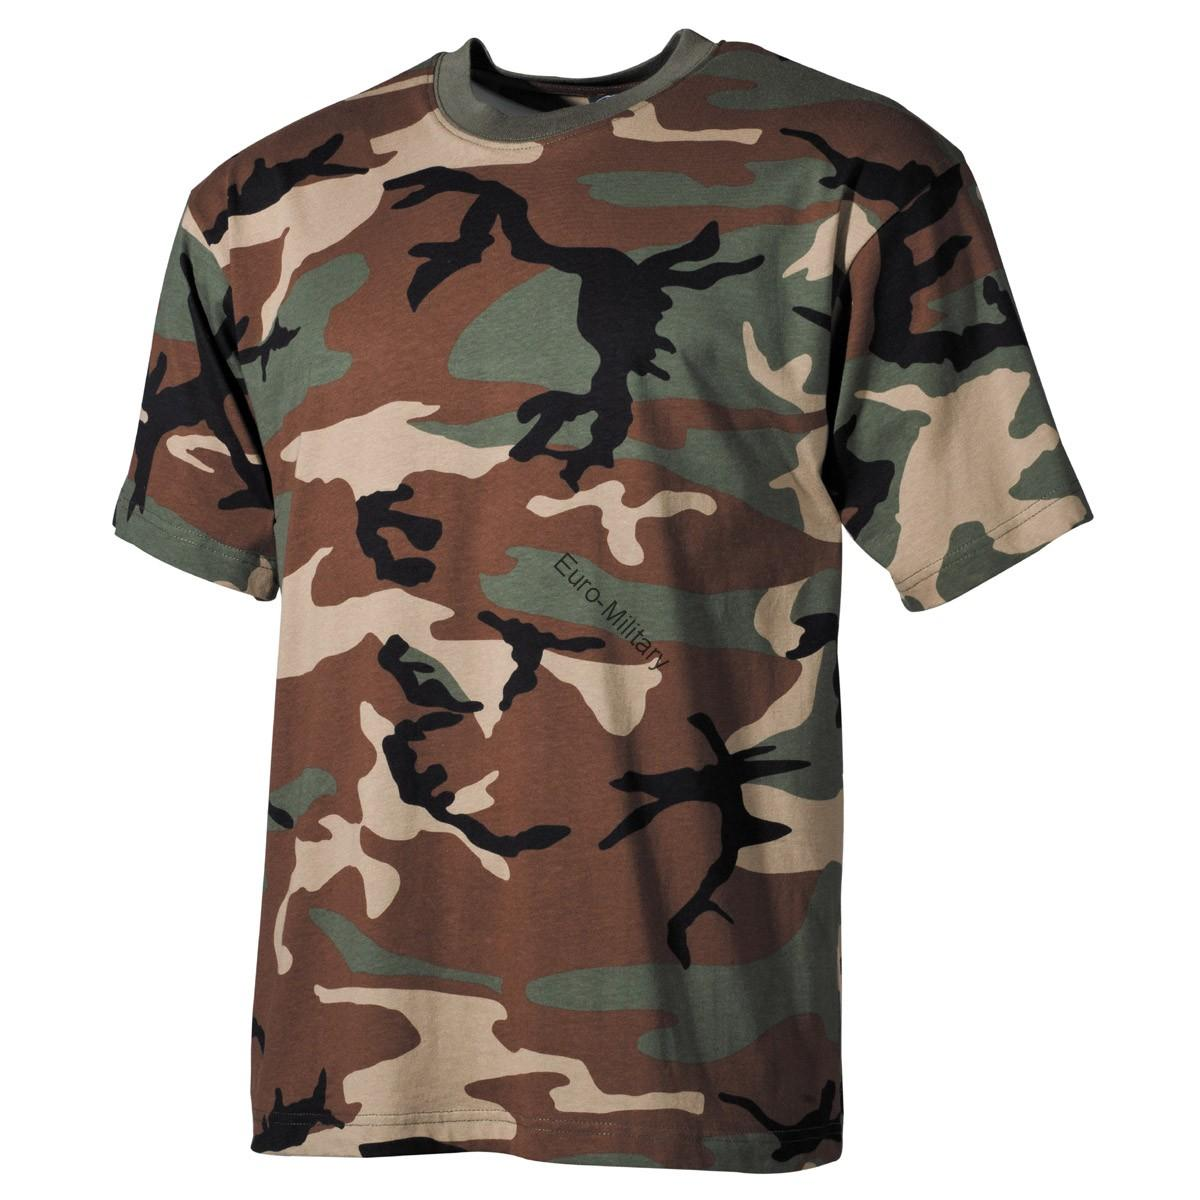 Woodland Camo T-Shirt - Short Sleeve